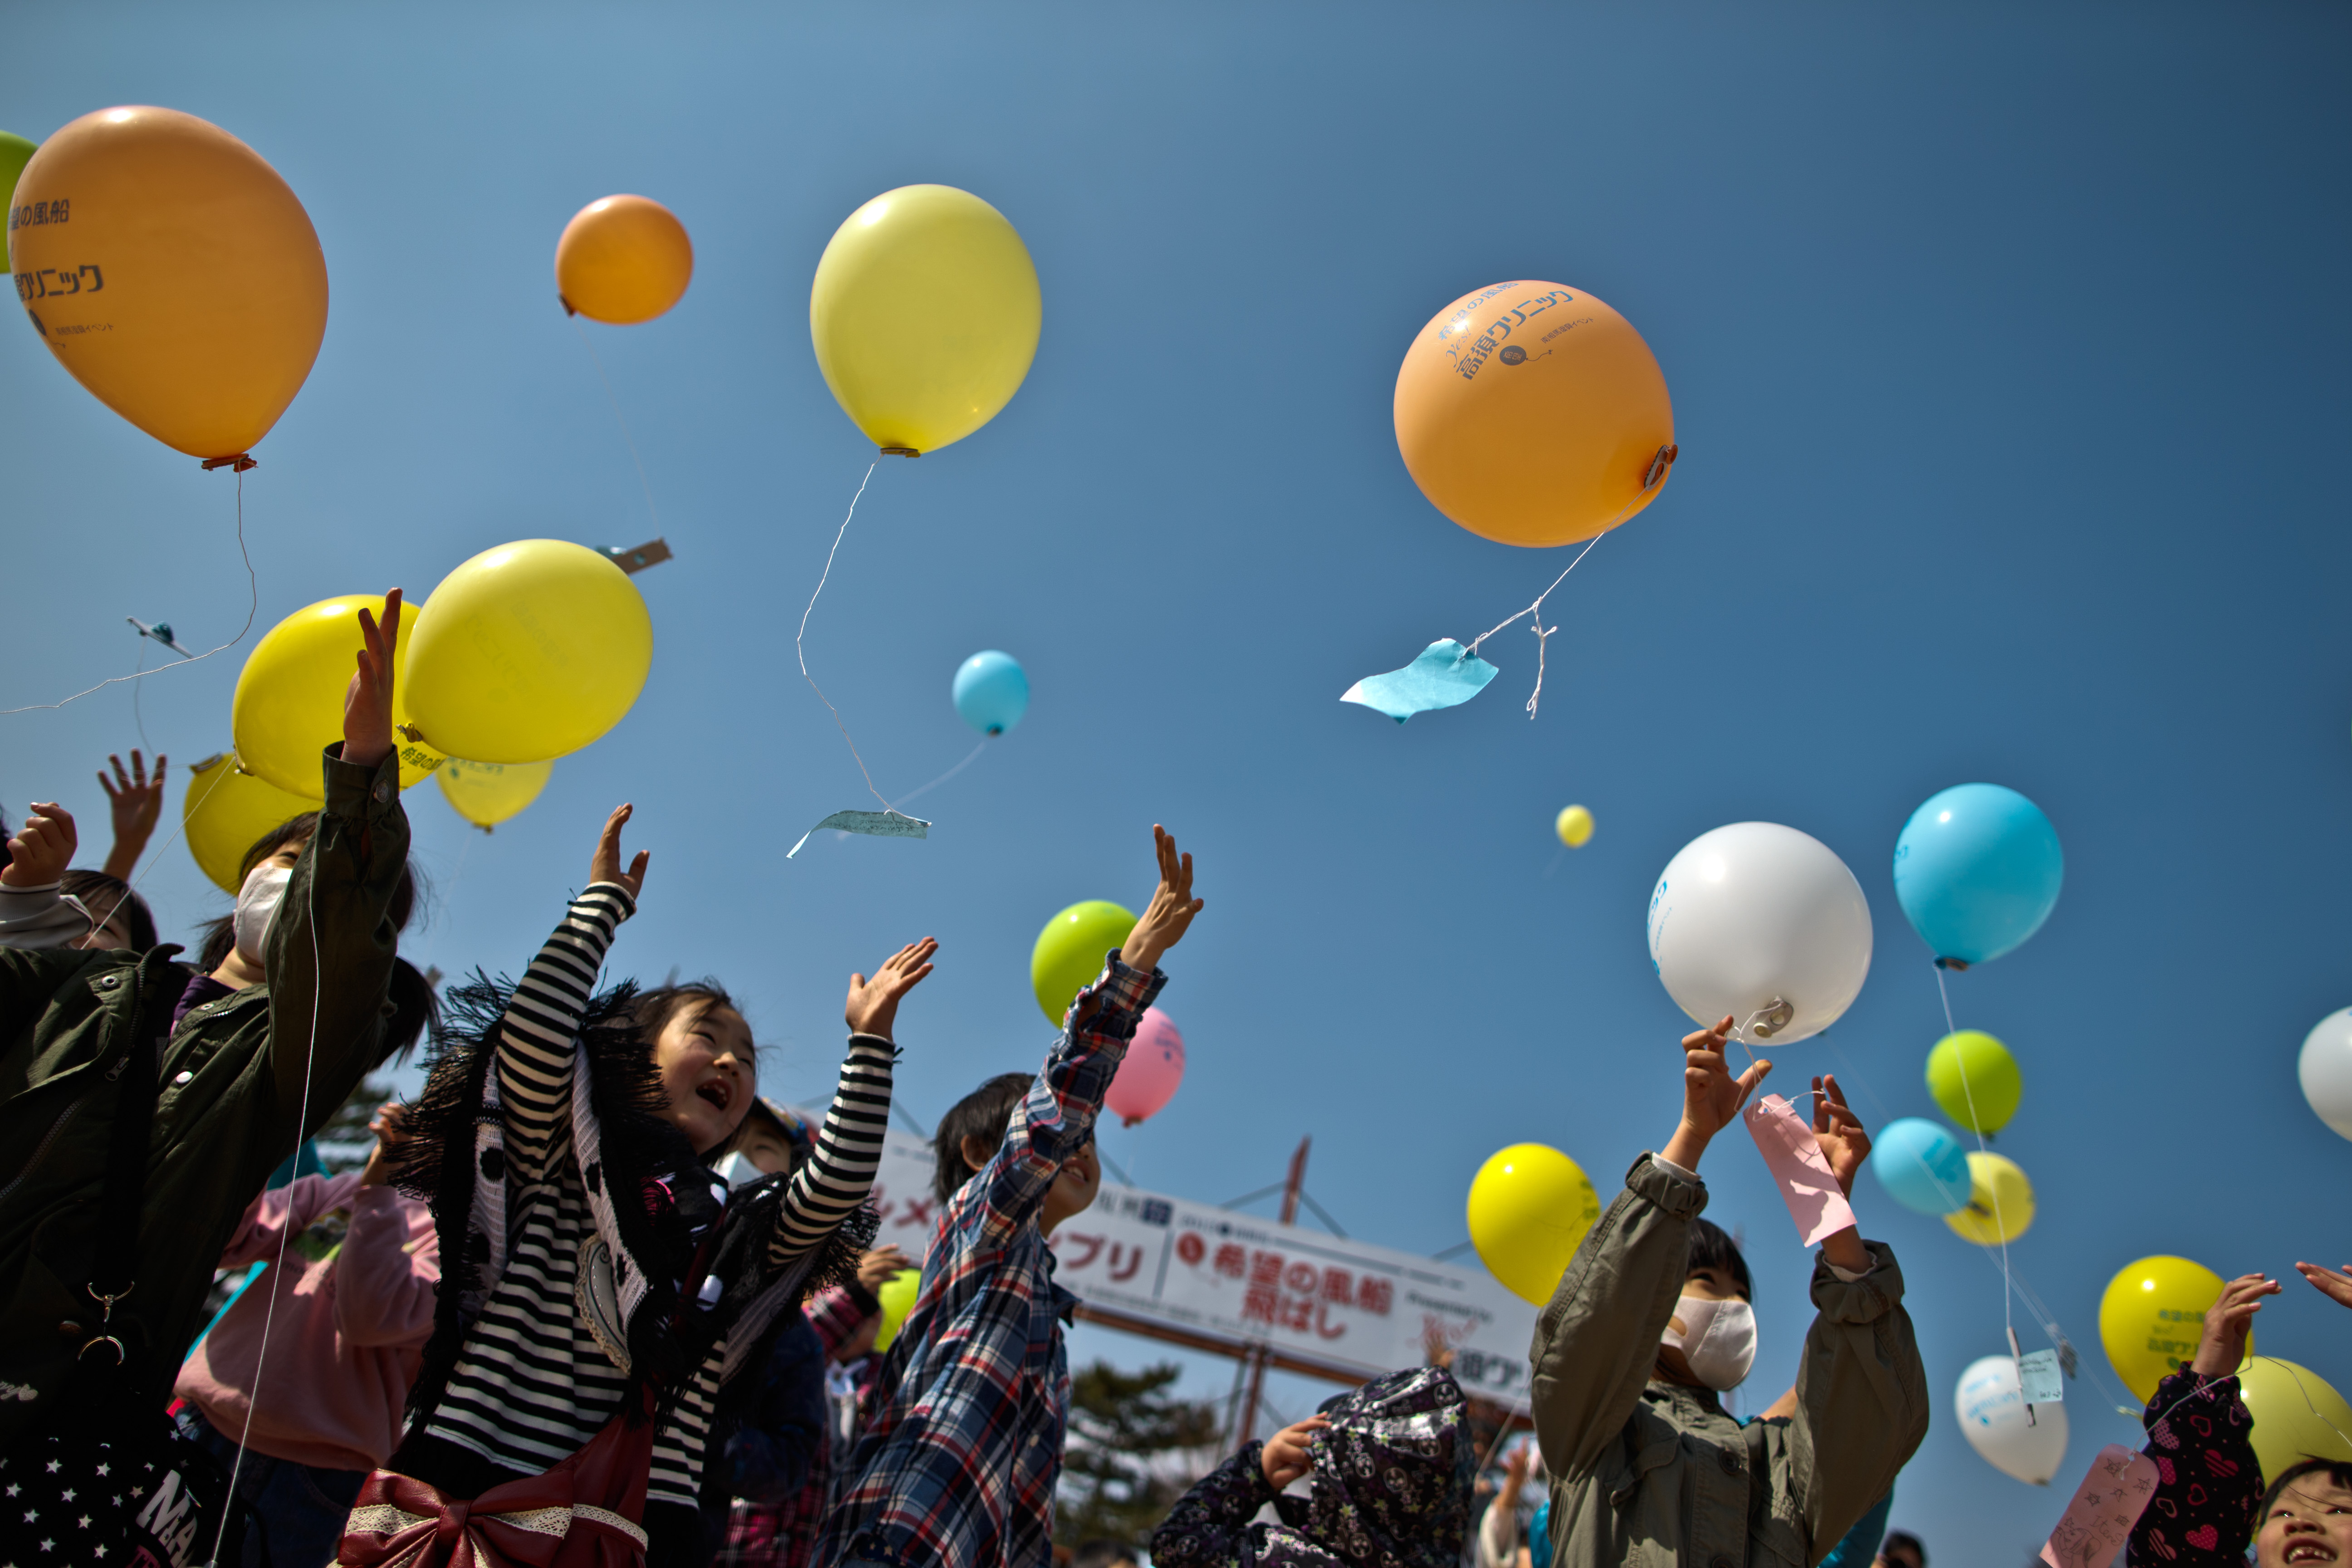 MINAMISOMA, JAPAN - MARCH 10:  Children float balloons and pay their respects to victims during the second anniversary commemoration of the earthquake and tsunami on March 10, 2013 in Minamisoma, Japan. Japan on March 11 will commemorate the second anniversary of the magnitude 9.0 earthquake and following tsunami, that claimed more than 18,000 lives.  (Photo by Athit Perawongmetha/Getty Images)